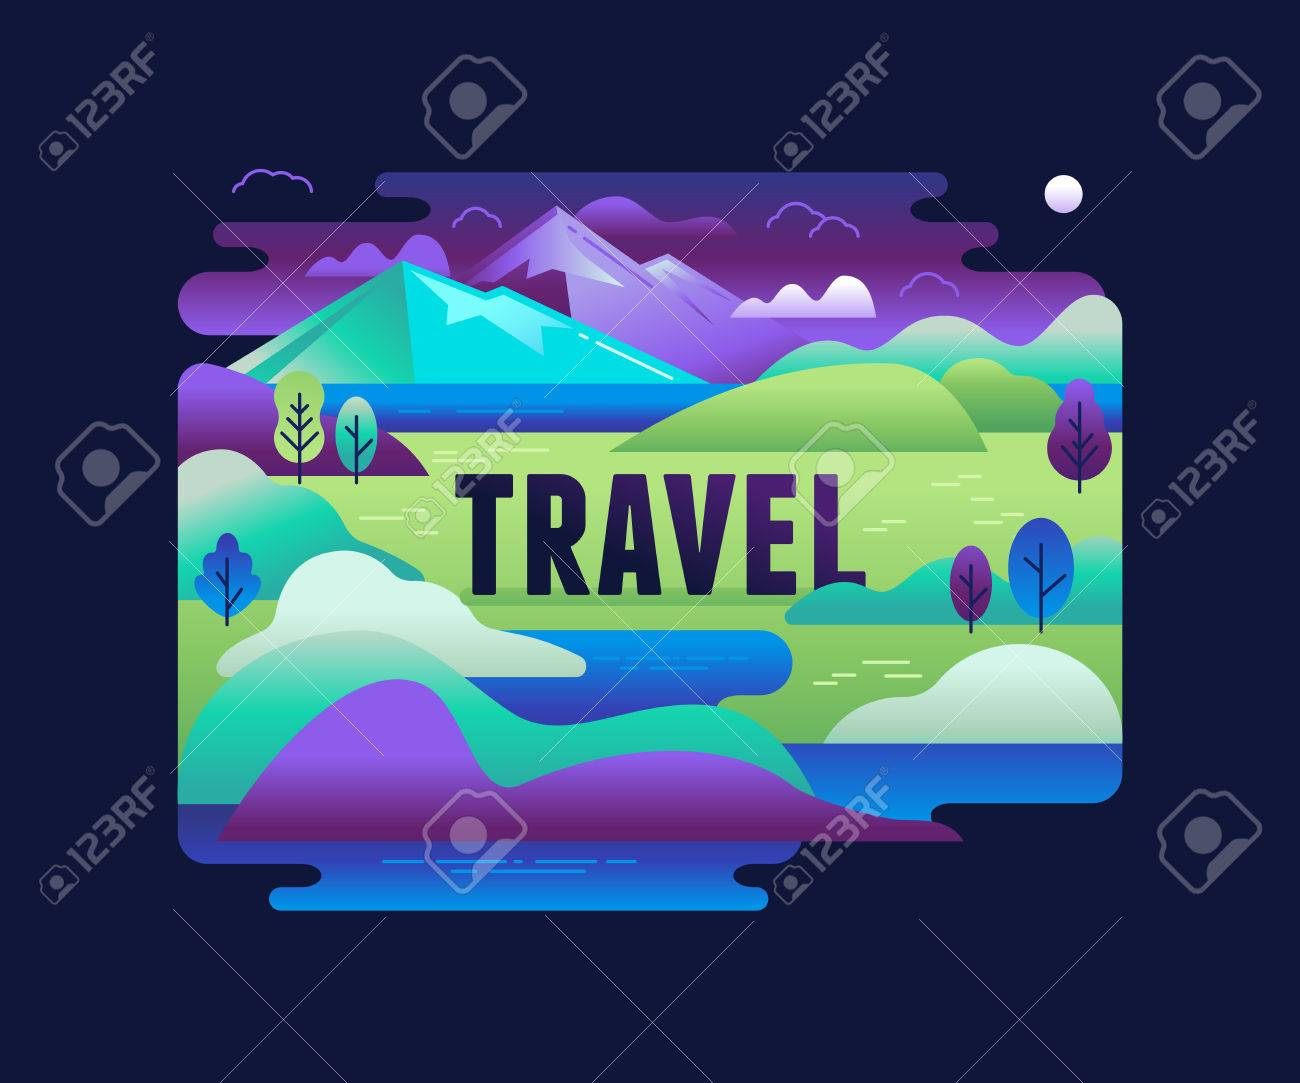 Vector illustration in trendy flat and linear style - background with green landscape and mountains - concept and design element for banners, infographics, greeting card - travel concept - 70965341